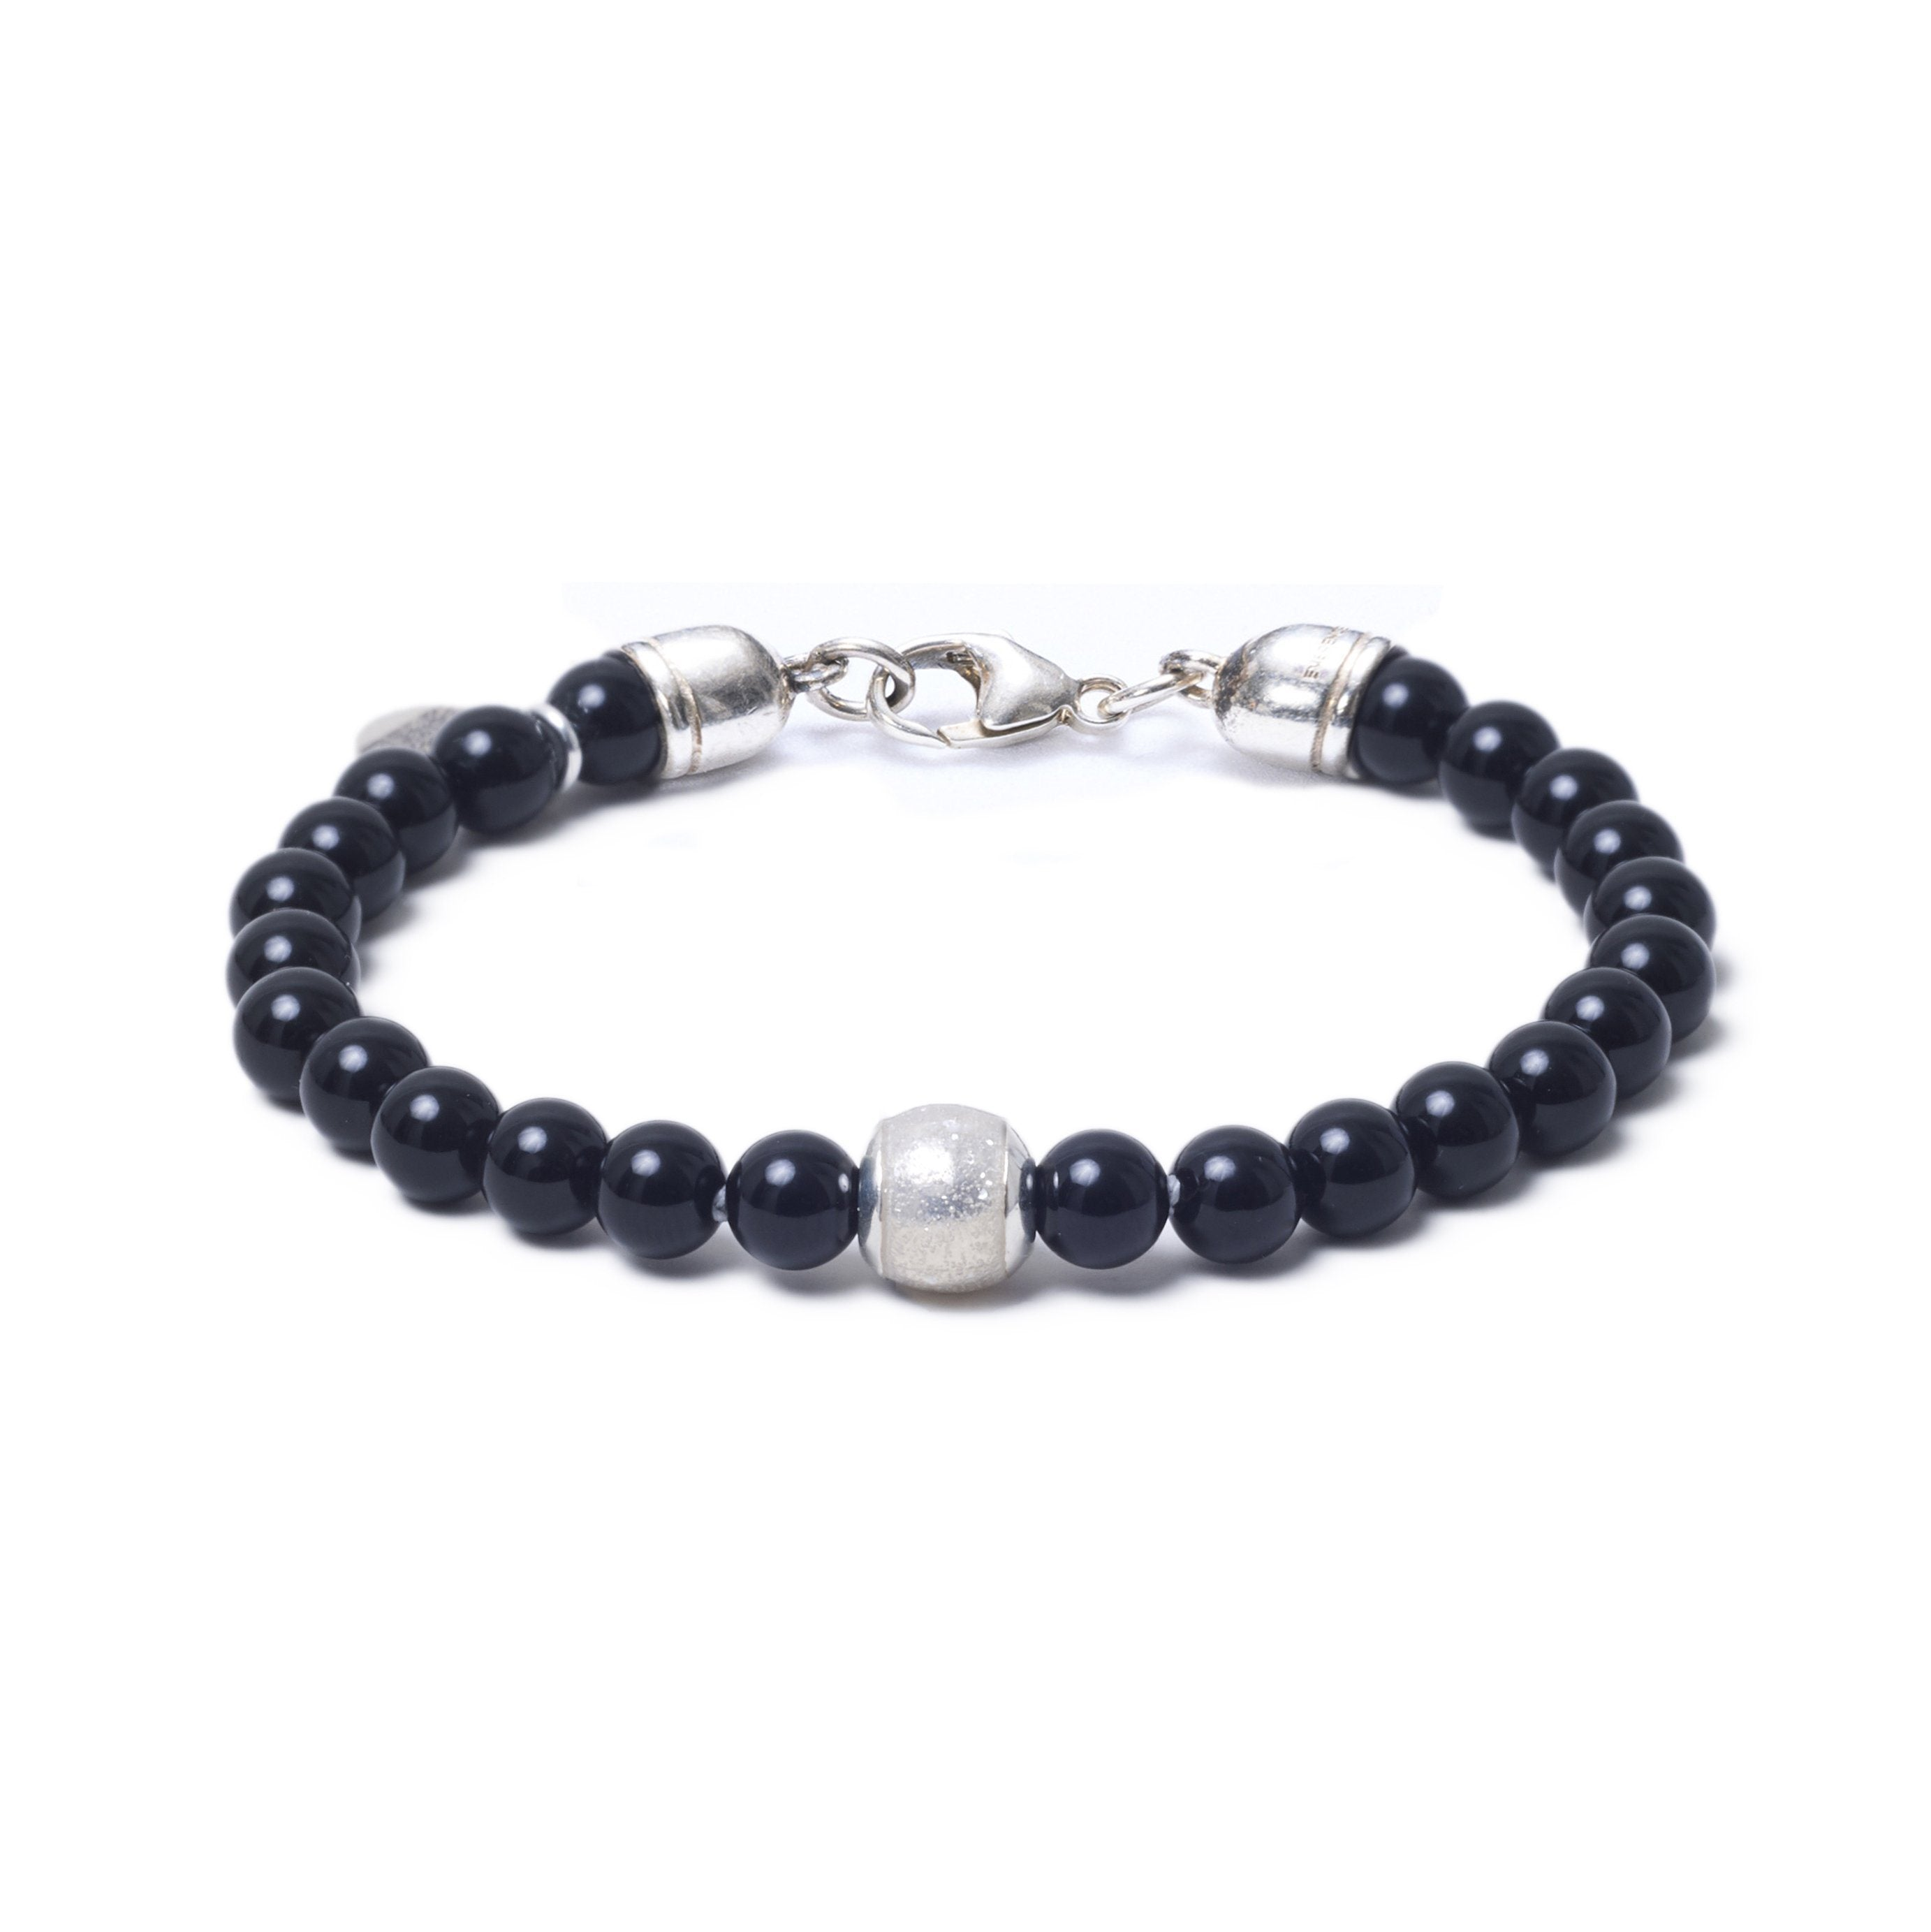 Onyx, One Everence Bead